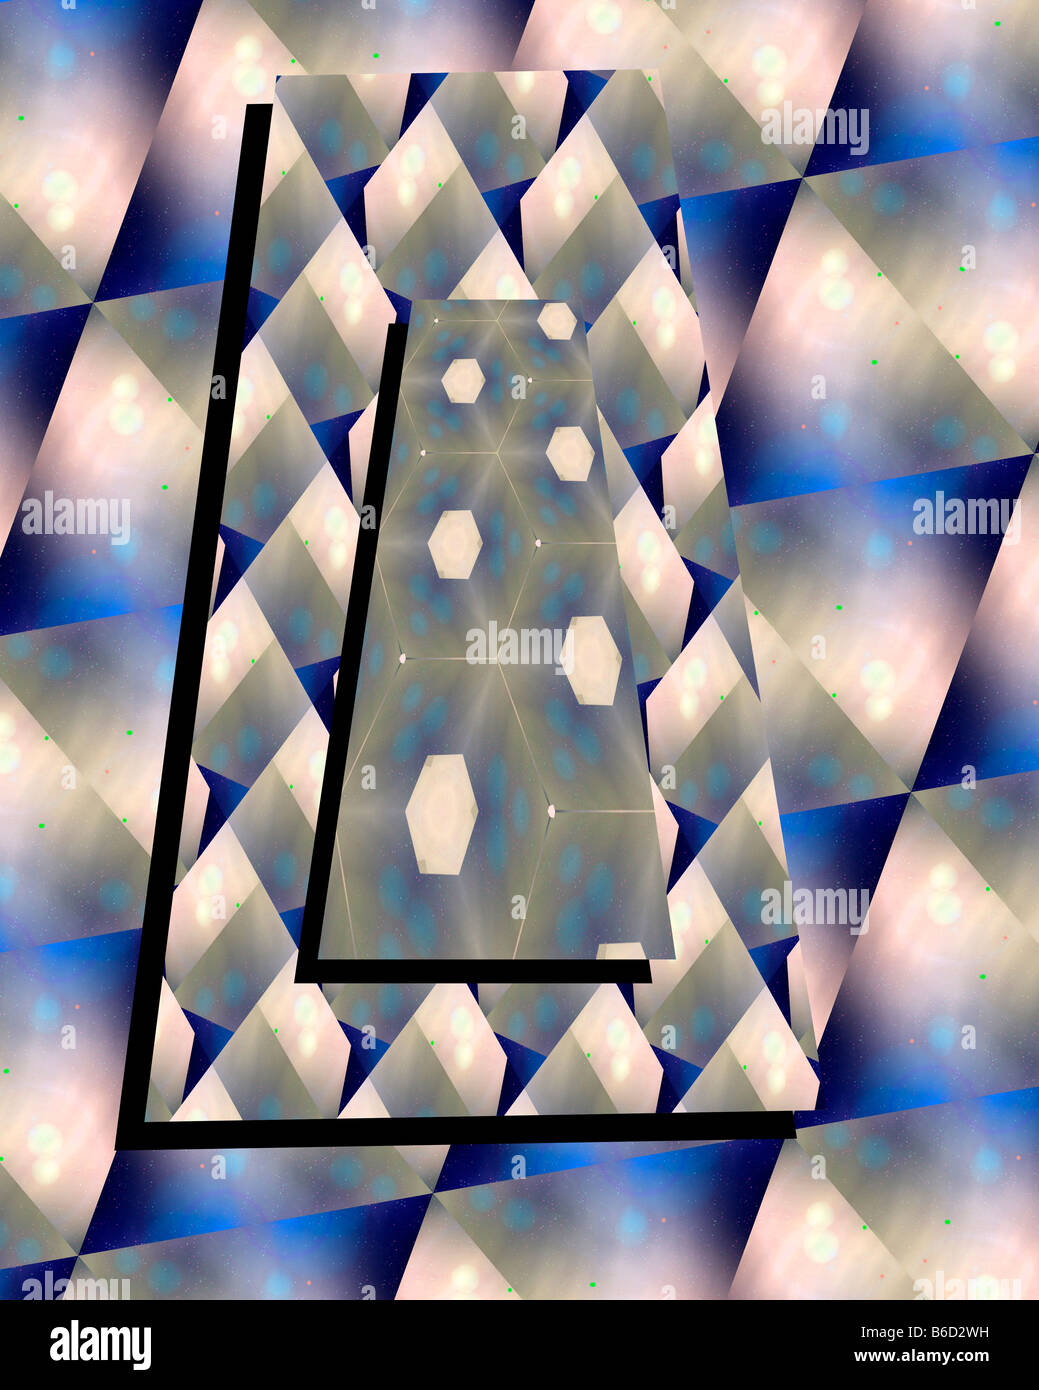 Abstract Design Entitled Composition In Blue - Stock Image